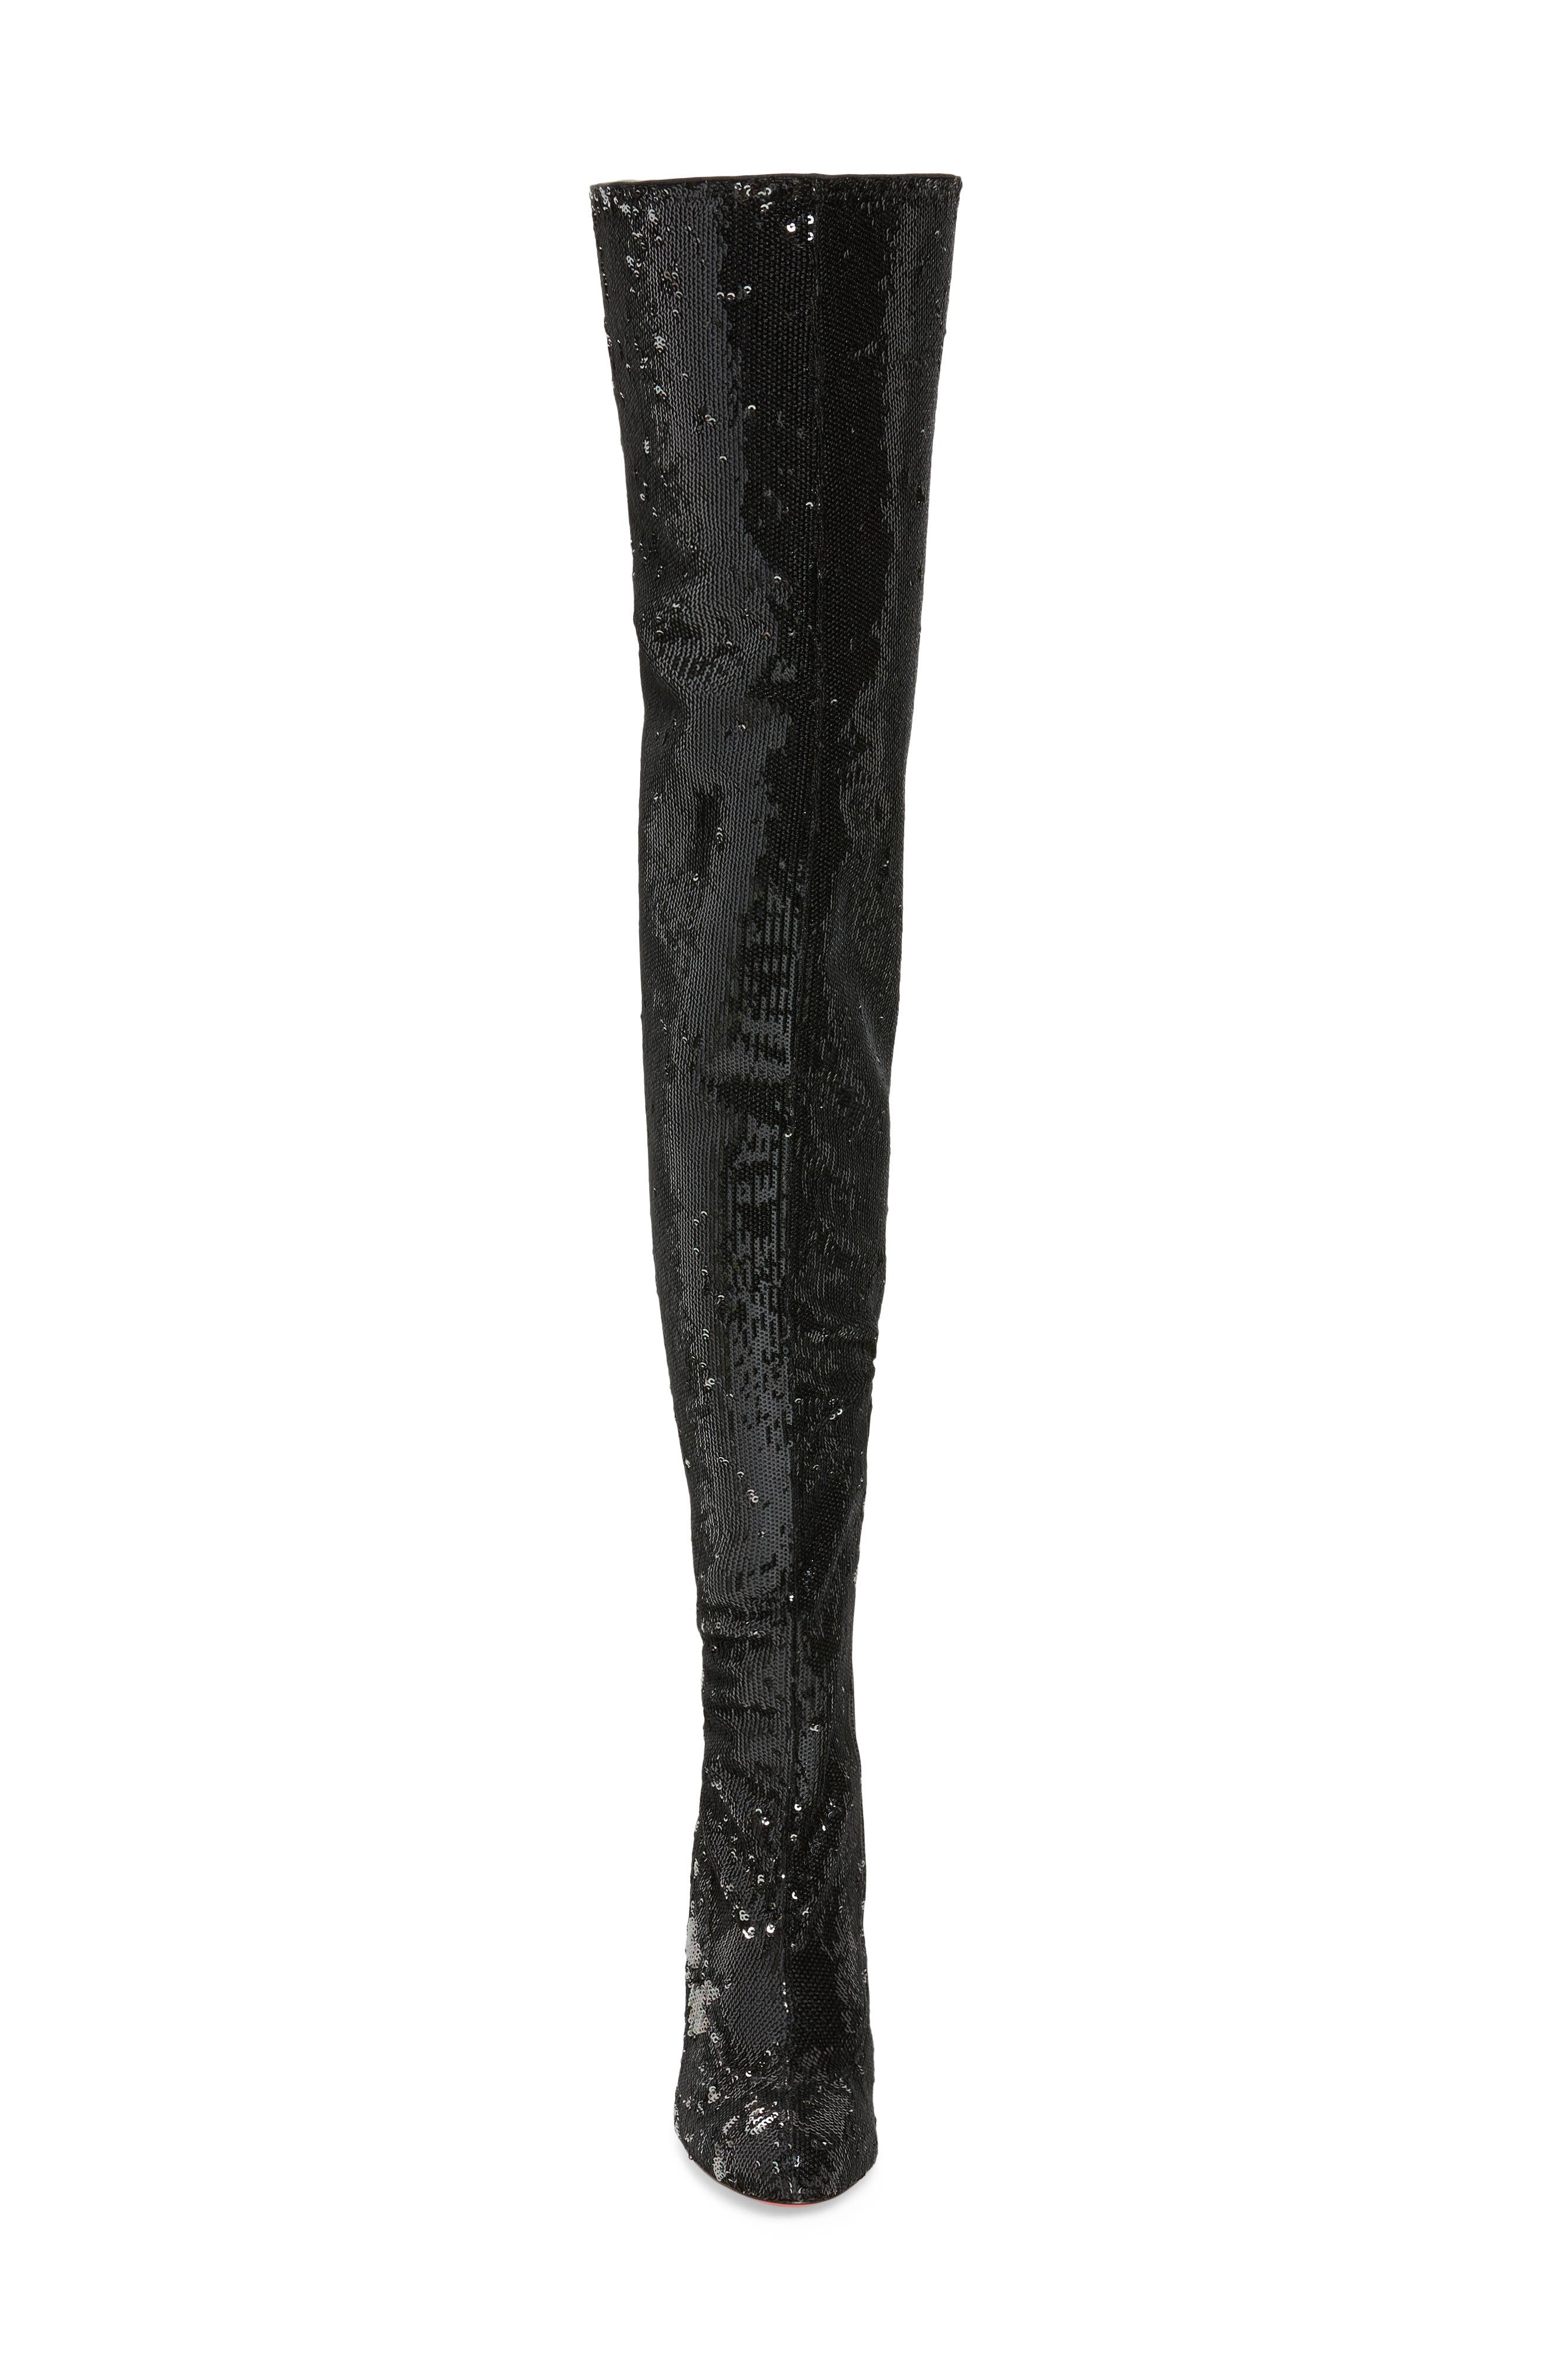 Louise Sequin Thigh High Boot,                             Alternate thumbnail 4, color,                             Black/ Silver